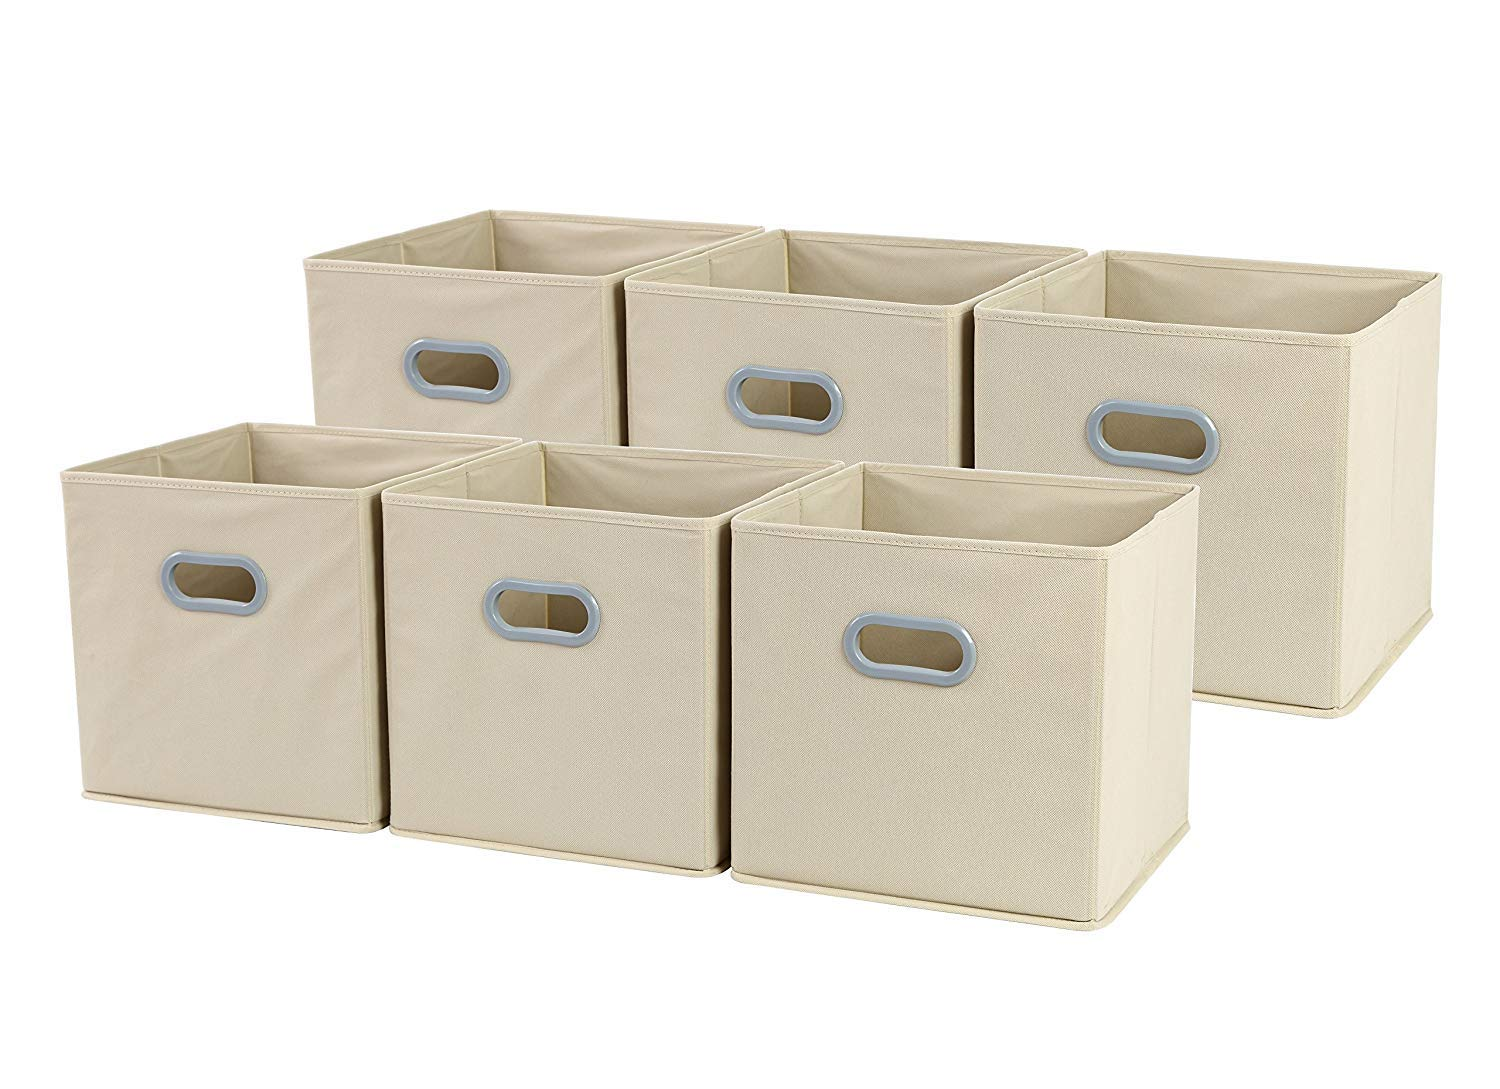 Foldable Cloth Storage Cube Basket Bins Organizer Containers Drawers, 6 Pack, Beige,12'x12'x12' 12x12x12 Sodynee S6B-12-BEIGE